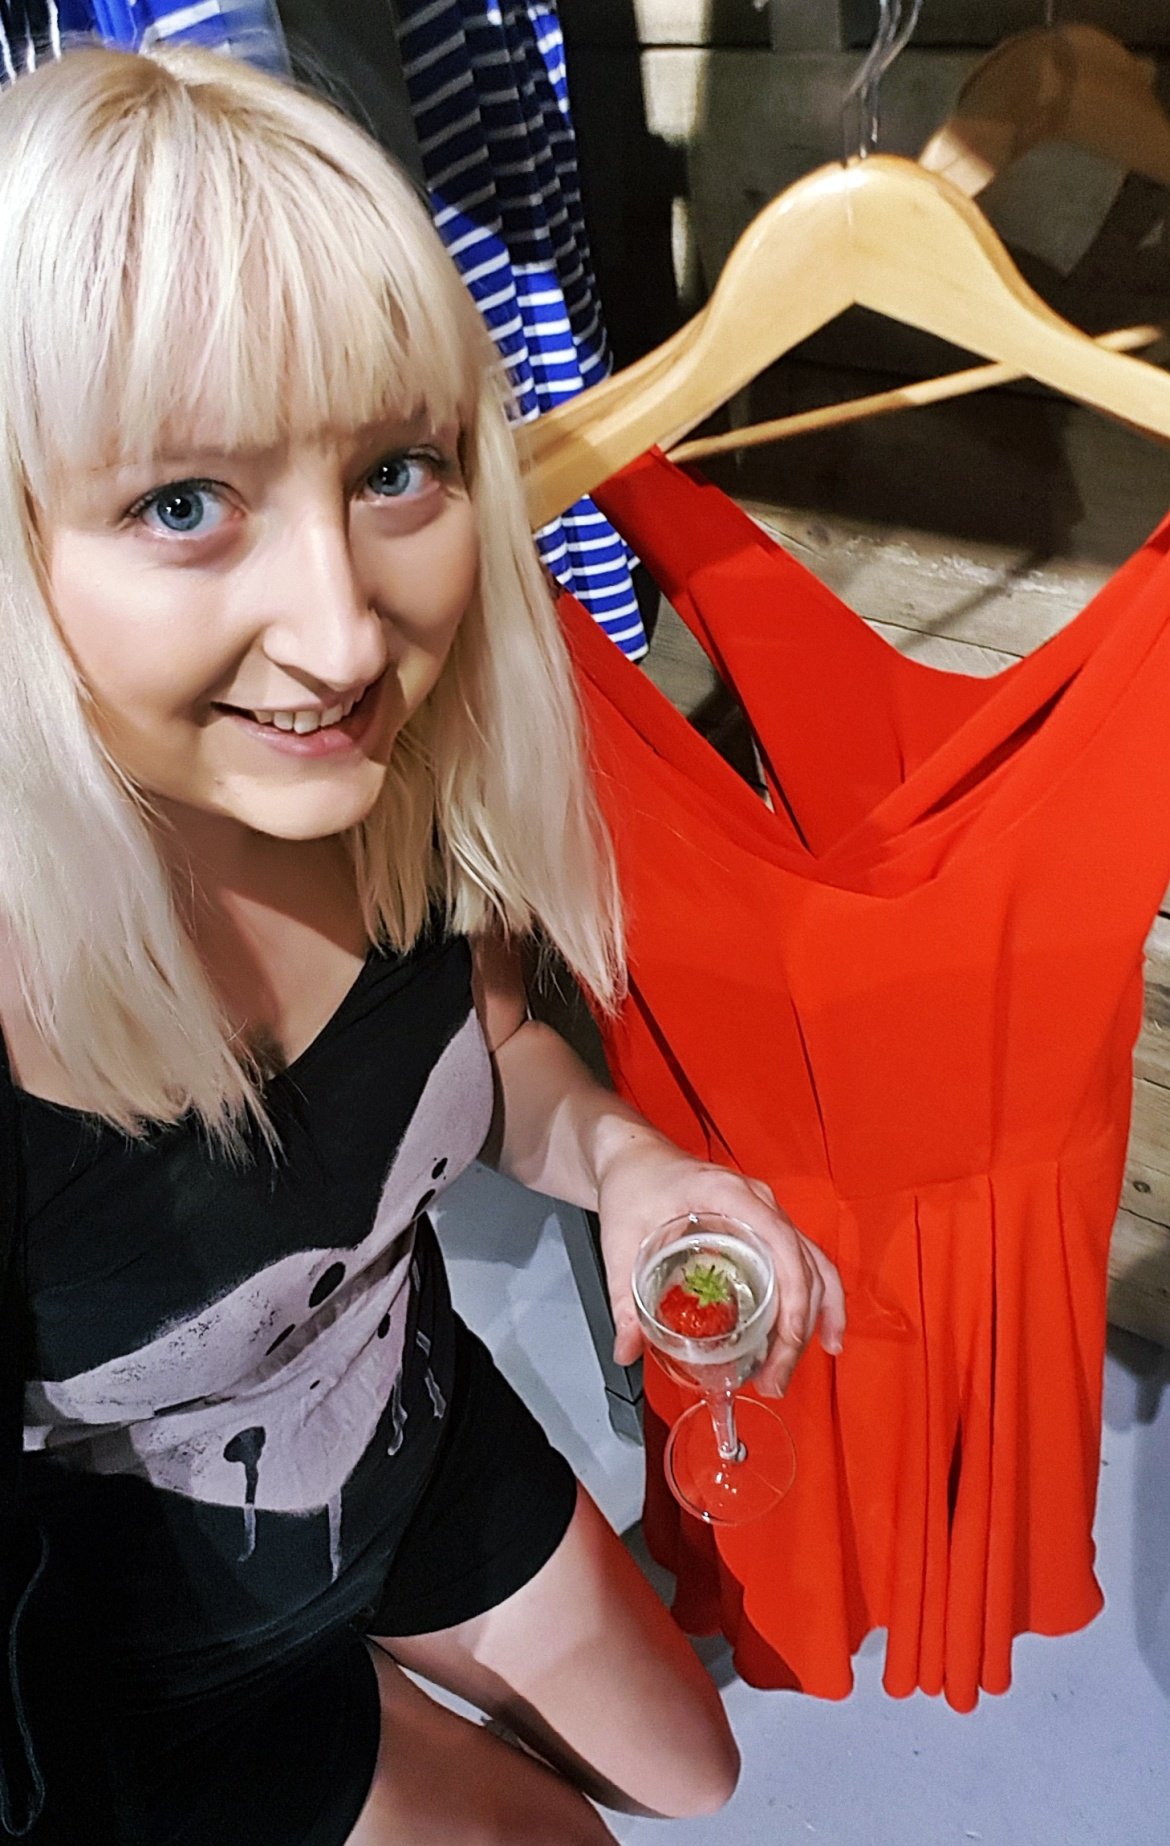 Me with a pretty red dress - Tune in with Joy the Store, Leeds shop review by BeckyBecky Blogs